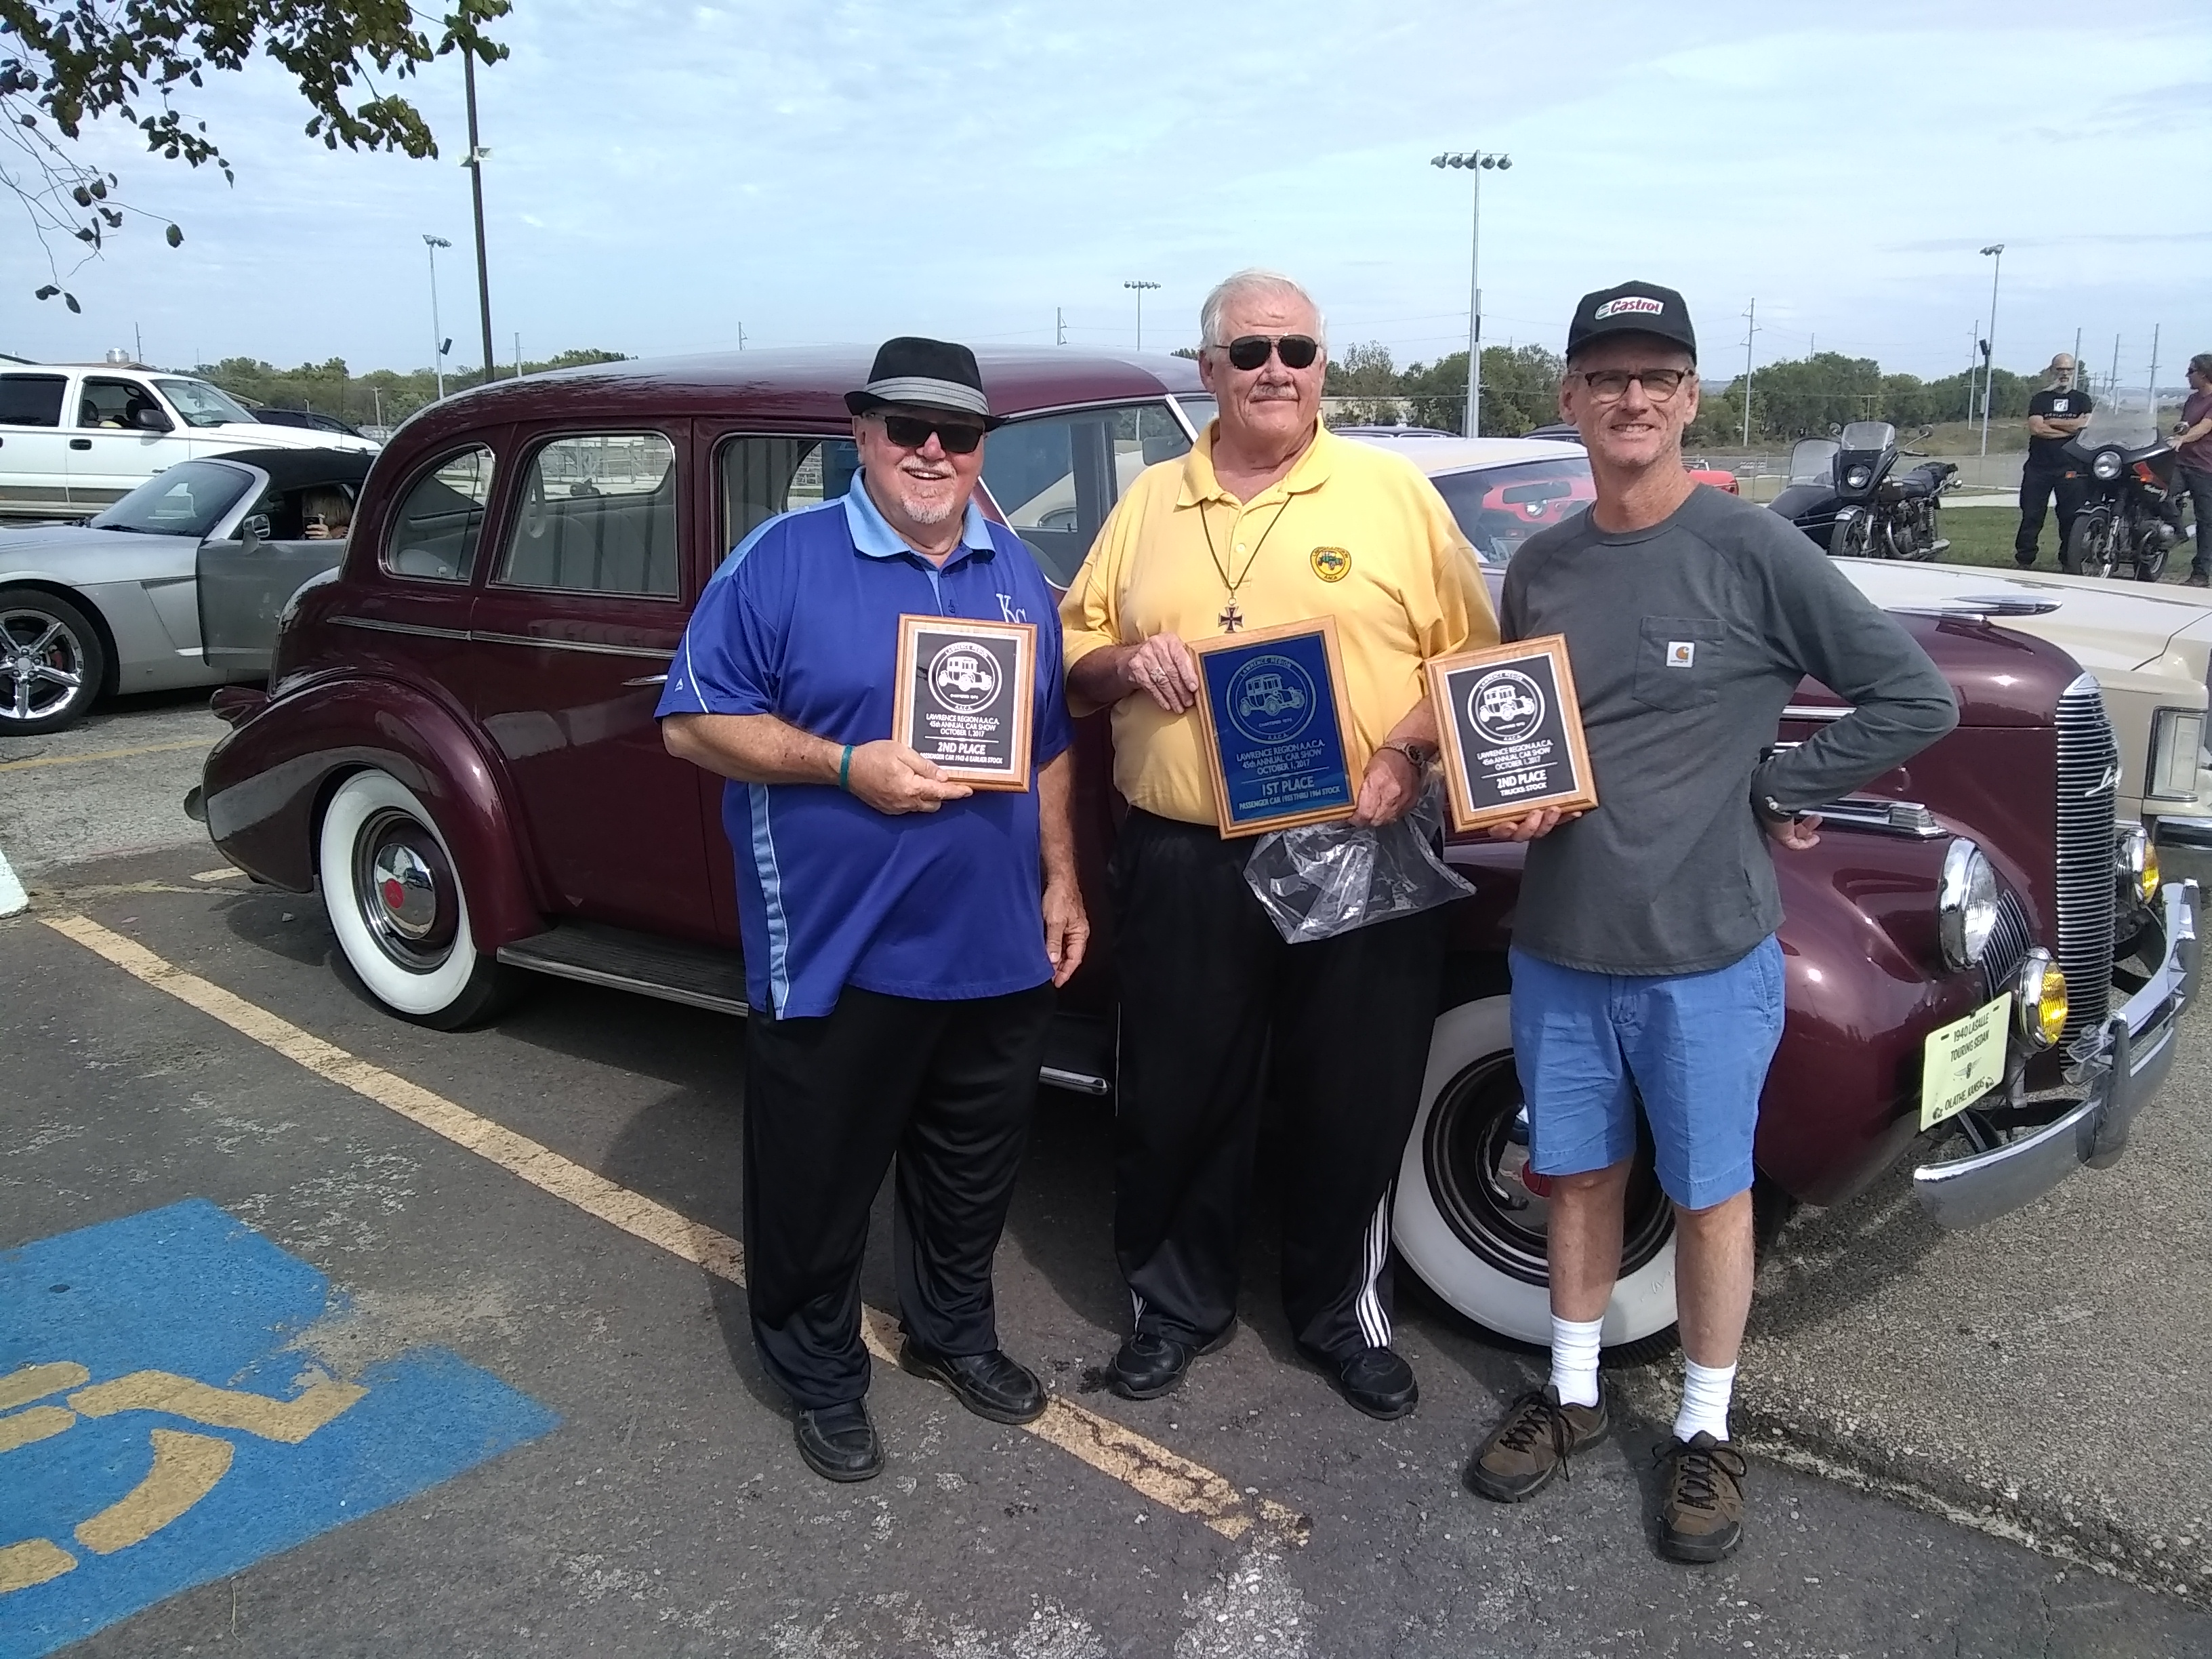 Tom, Norm, and Tom bringing home the hardware